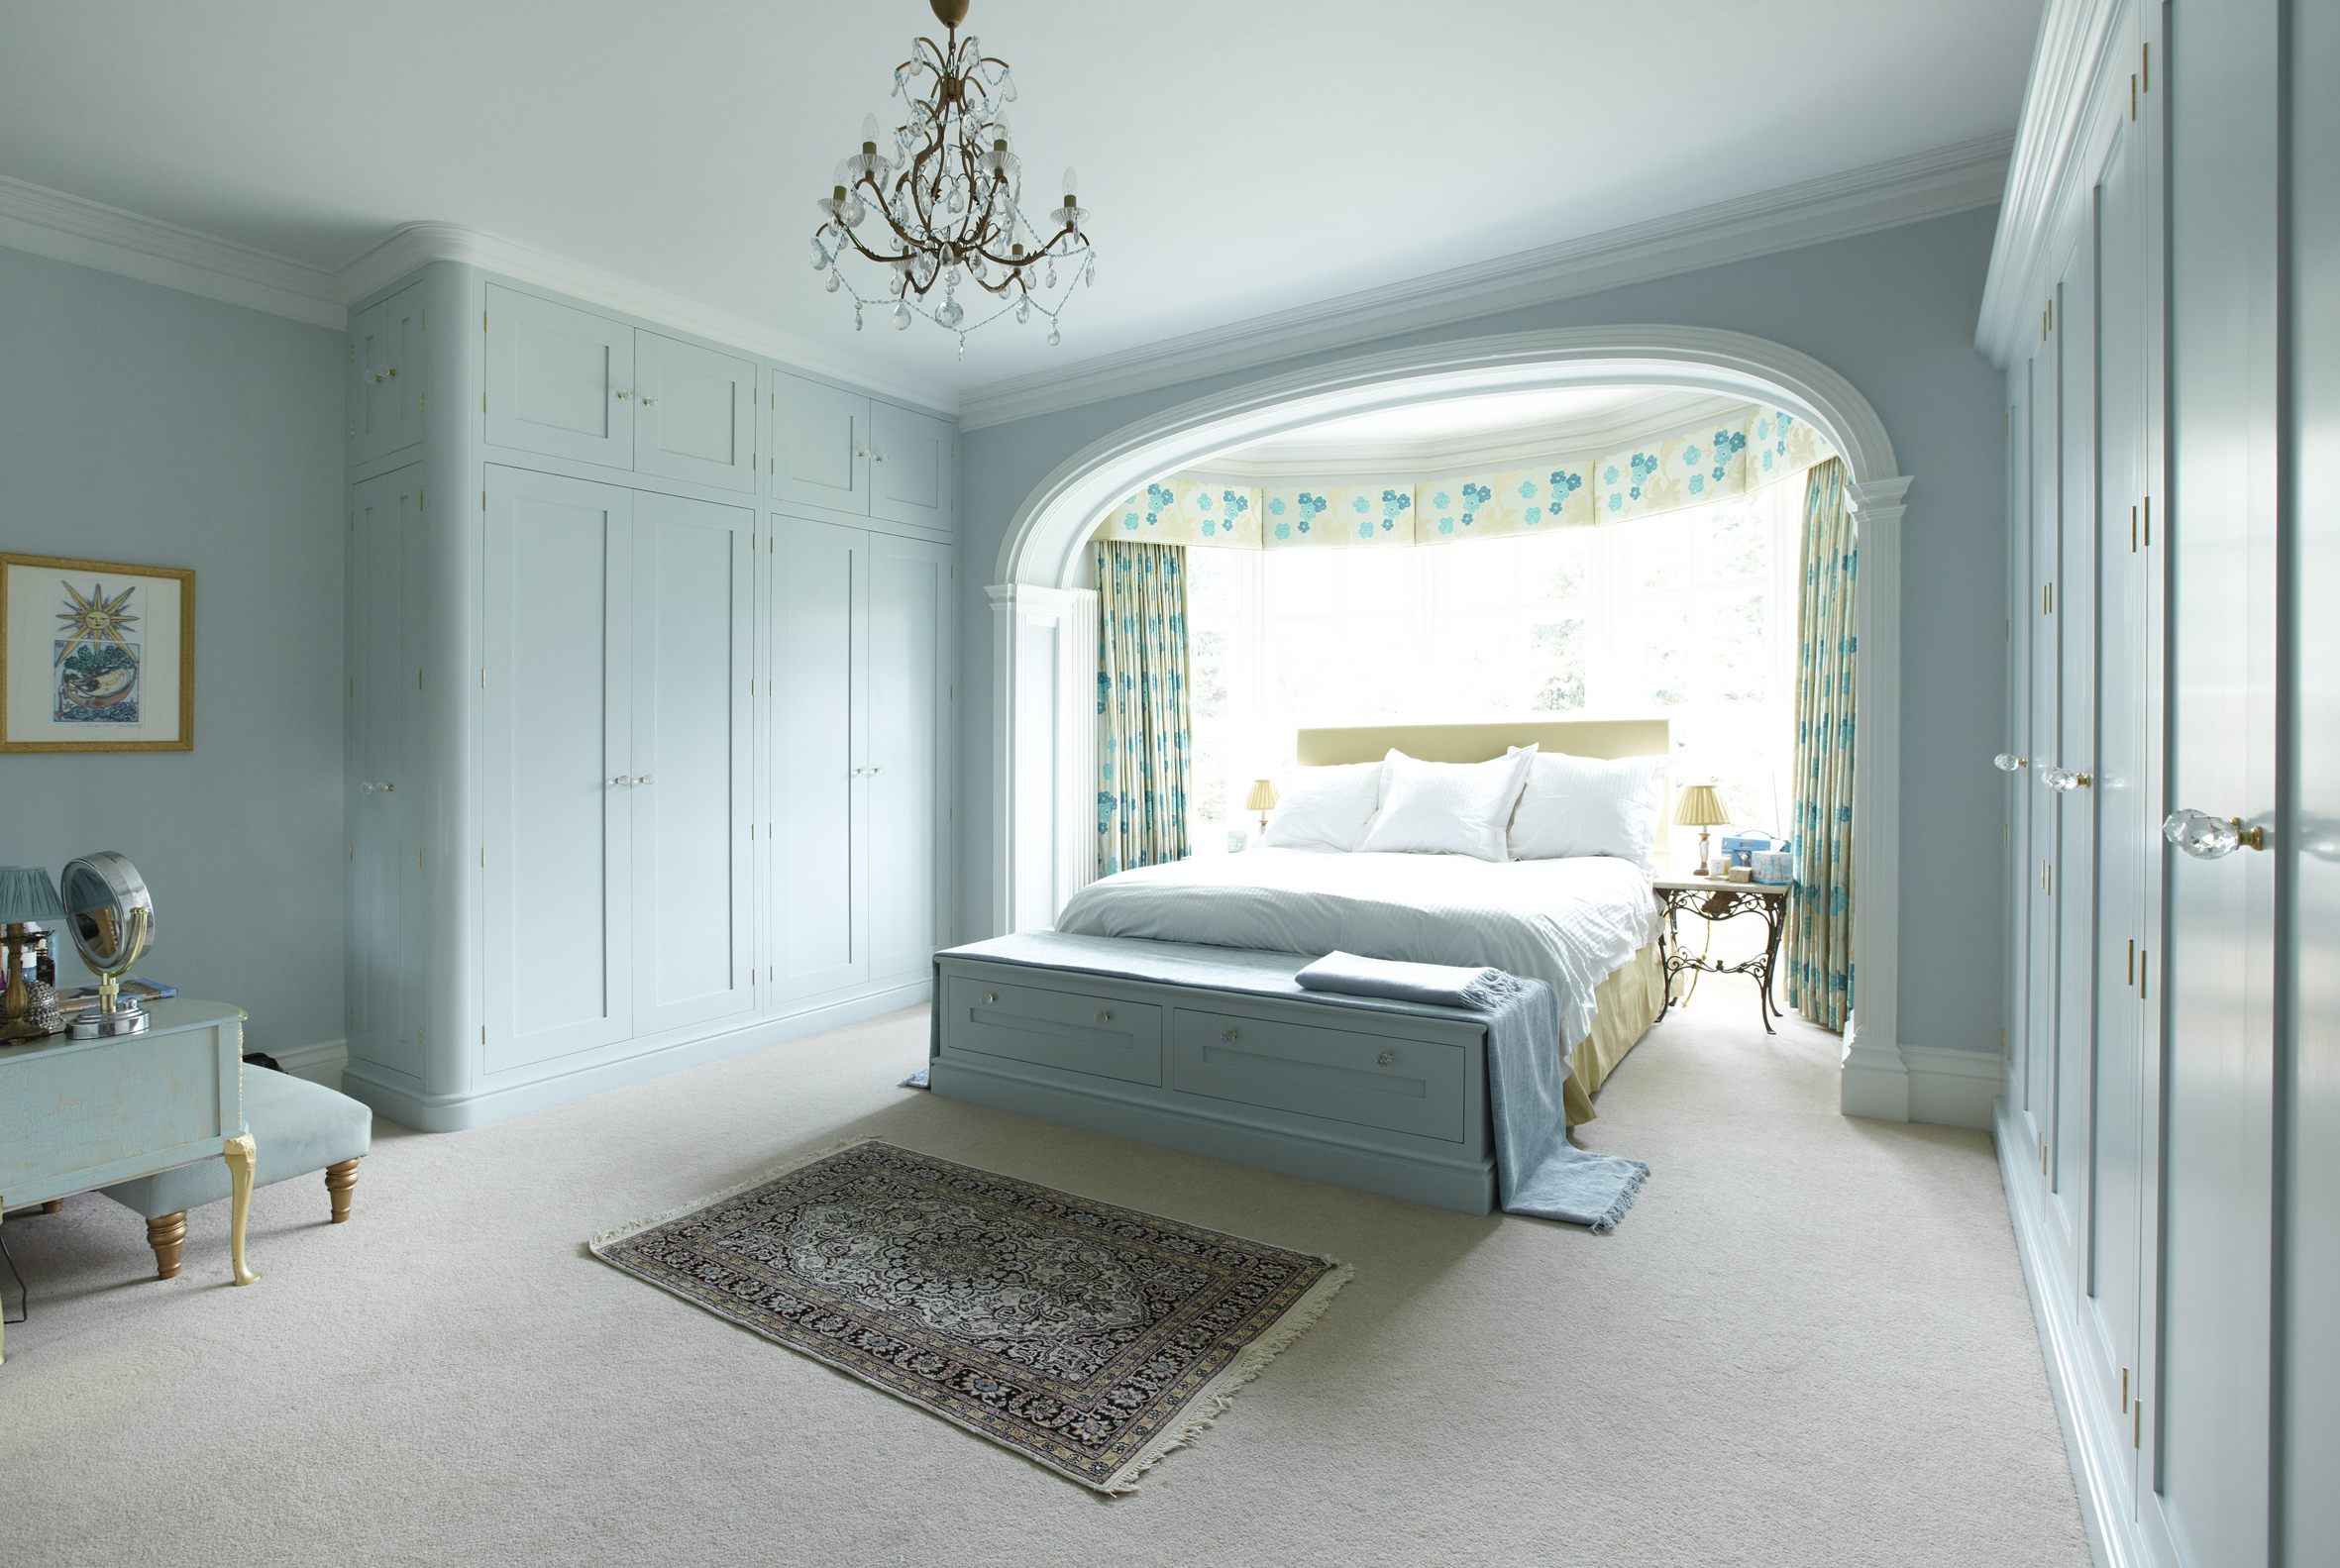 Bespoke shaker blue painted bedroom